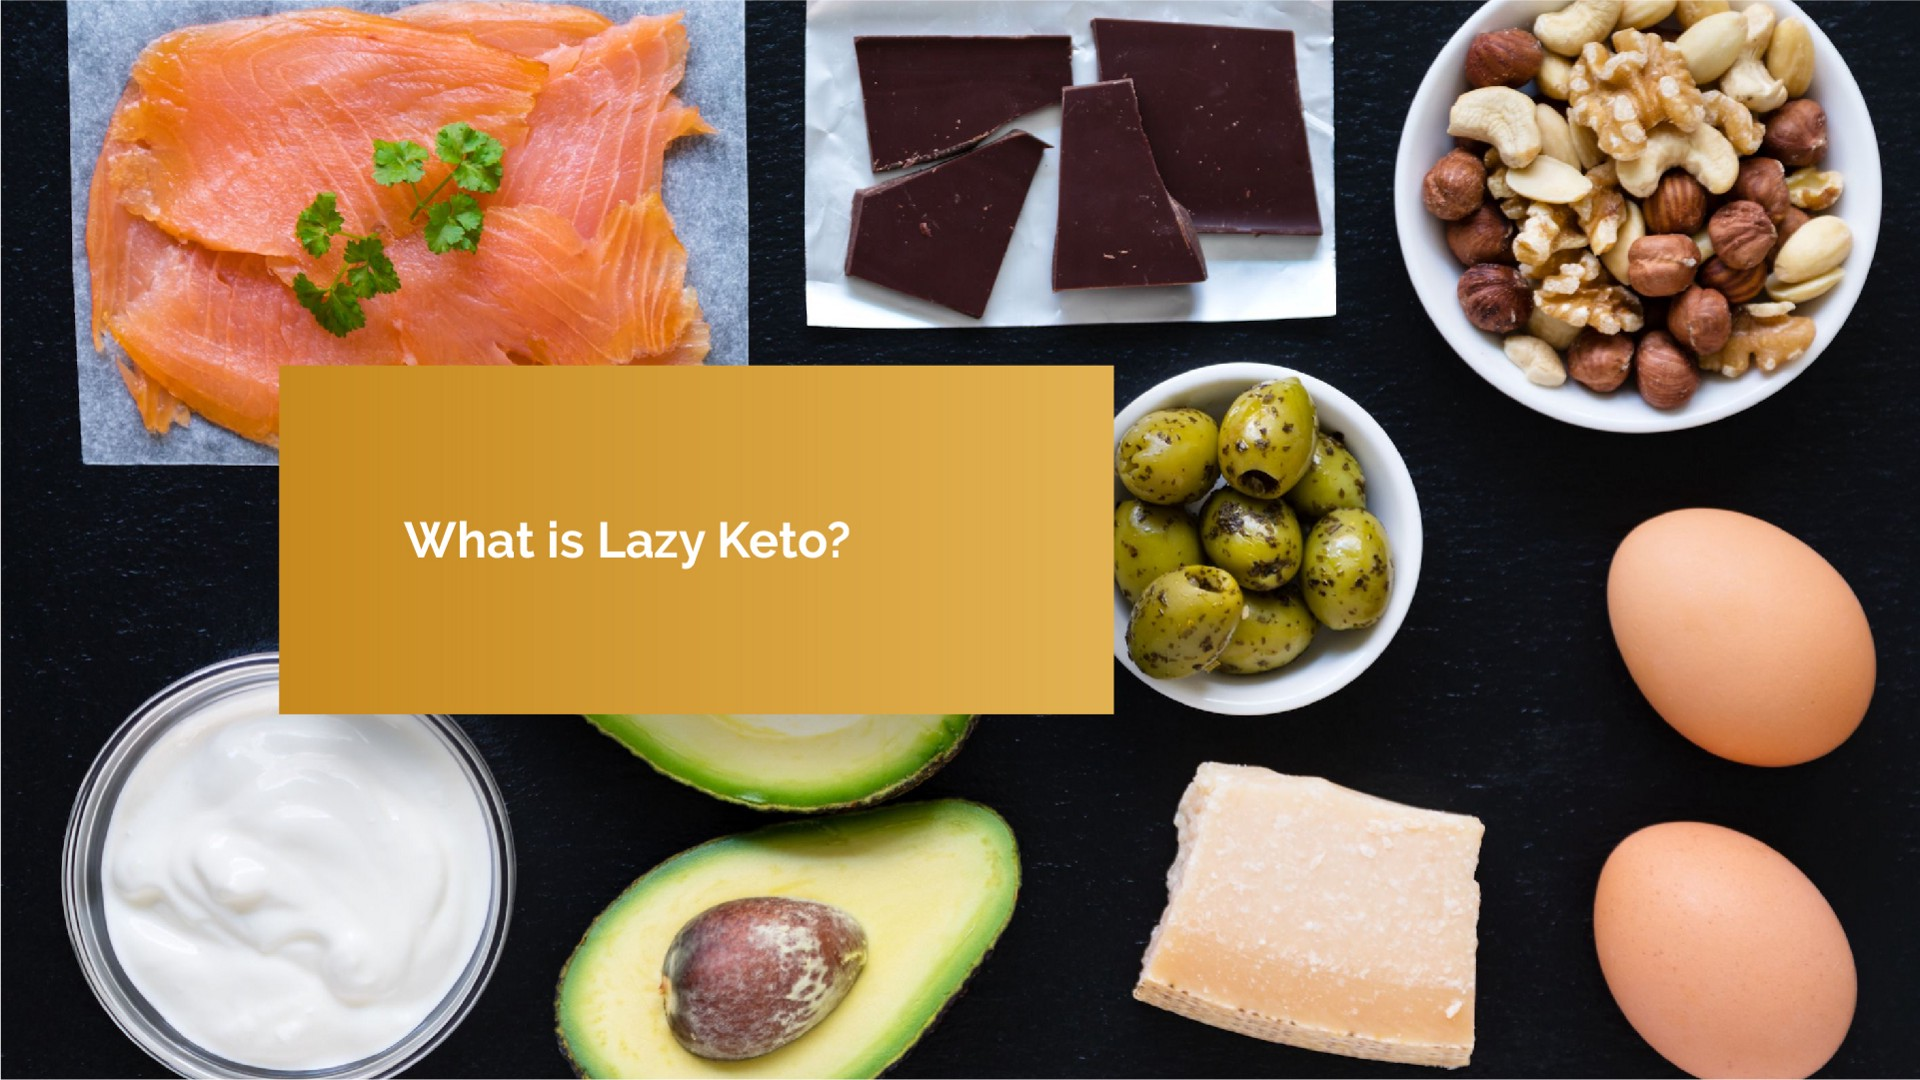 Lazy Keto difference benefits risks weight loss